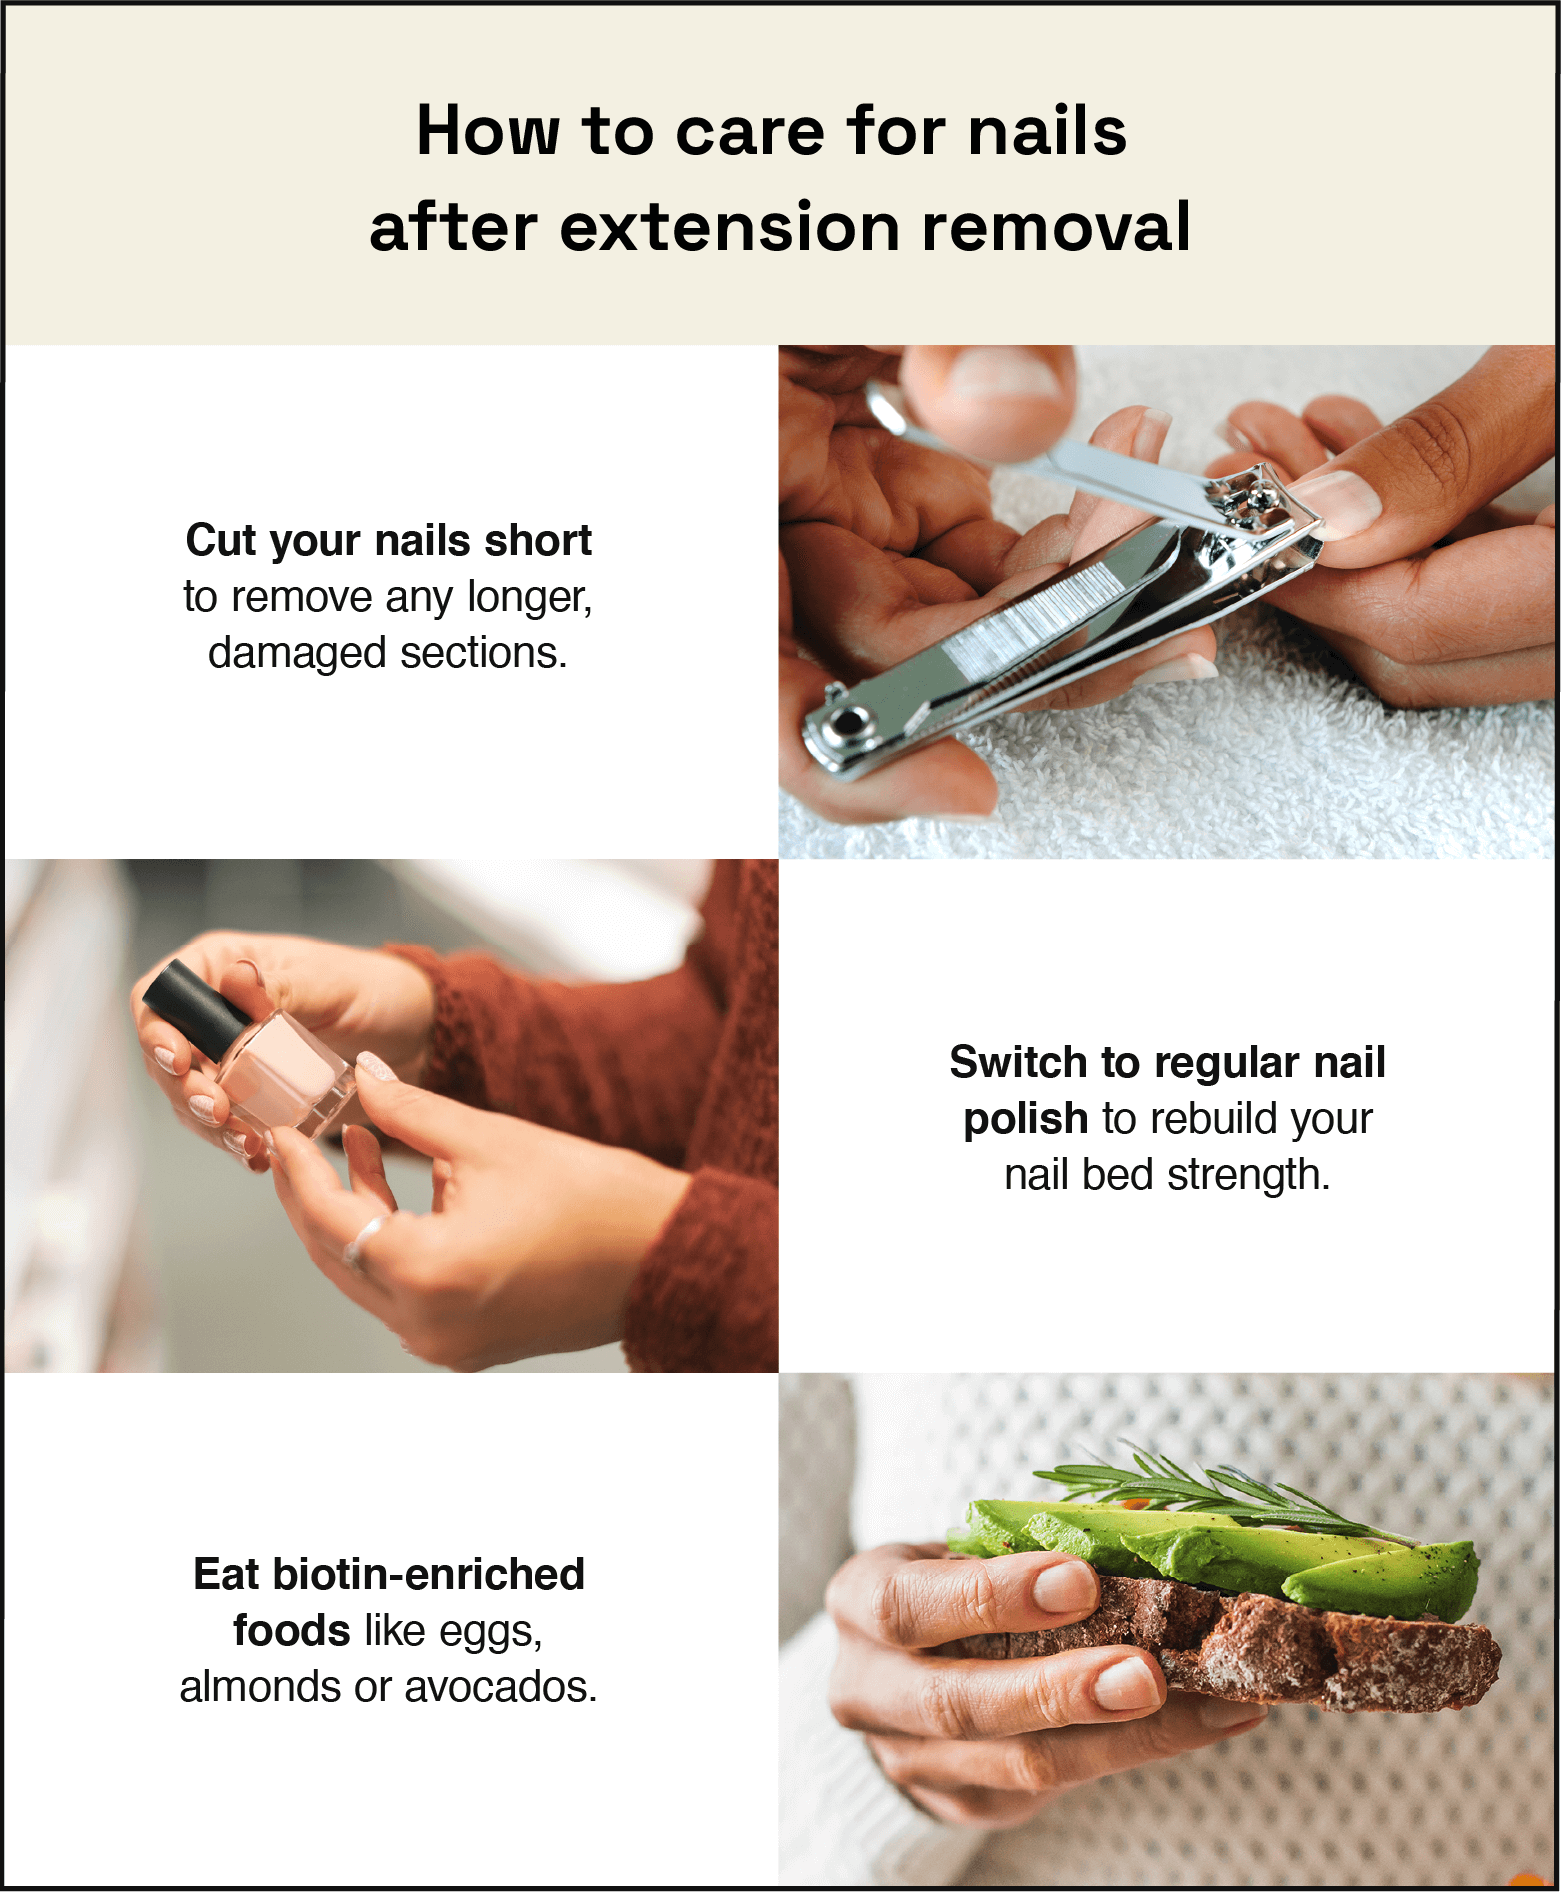 how to care for nail extension after removal